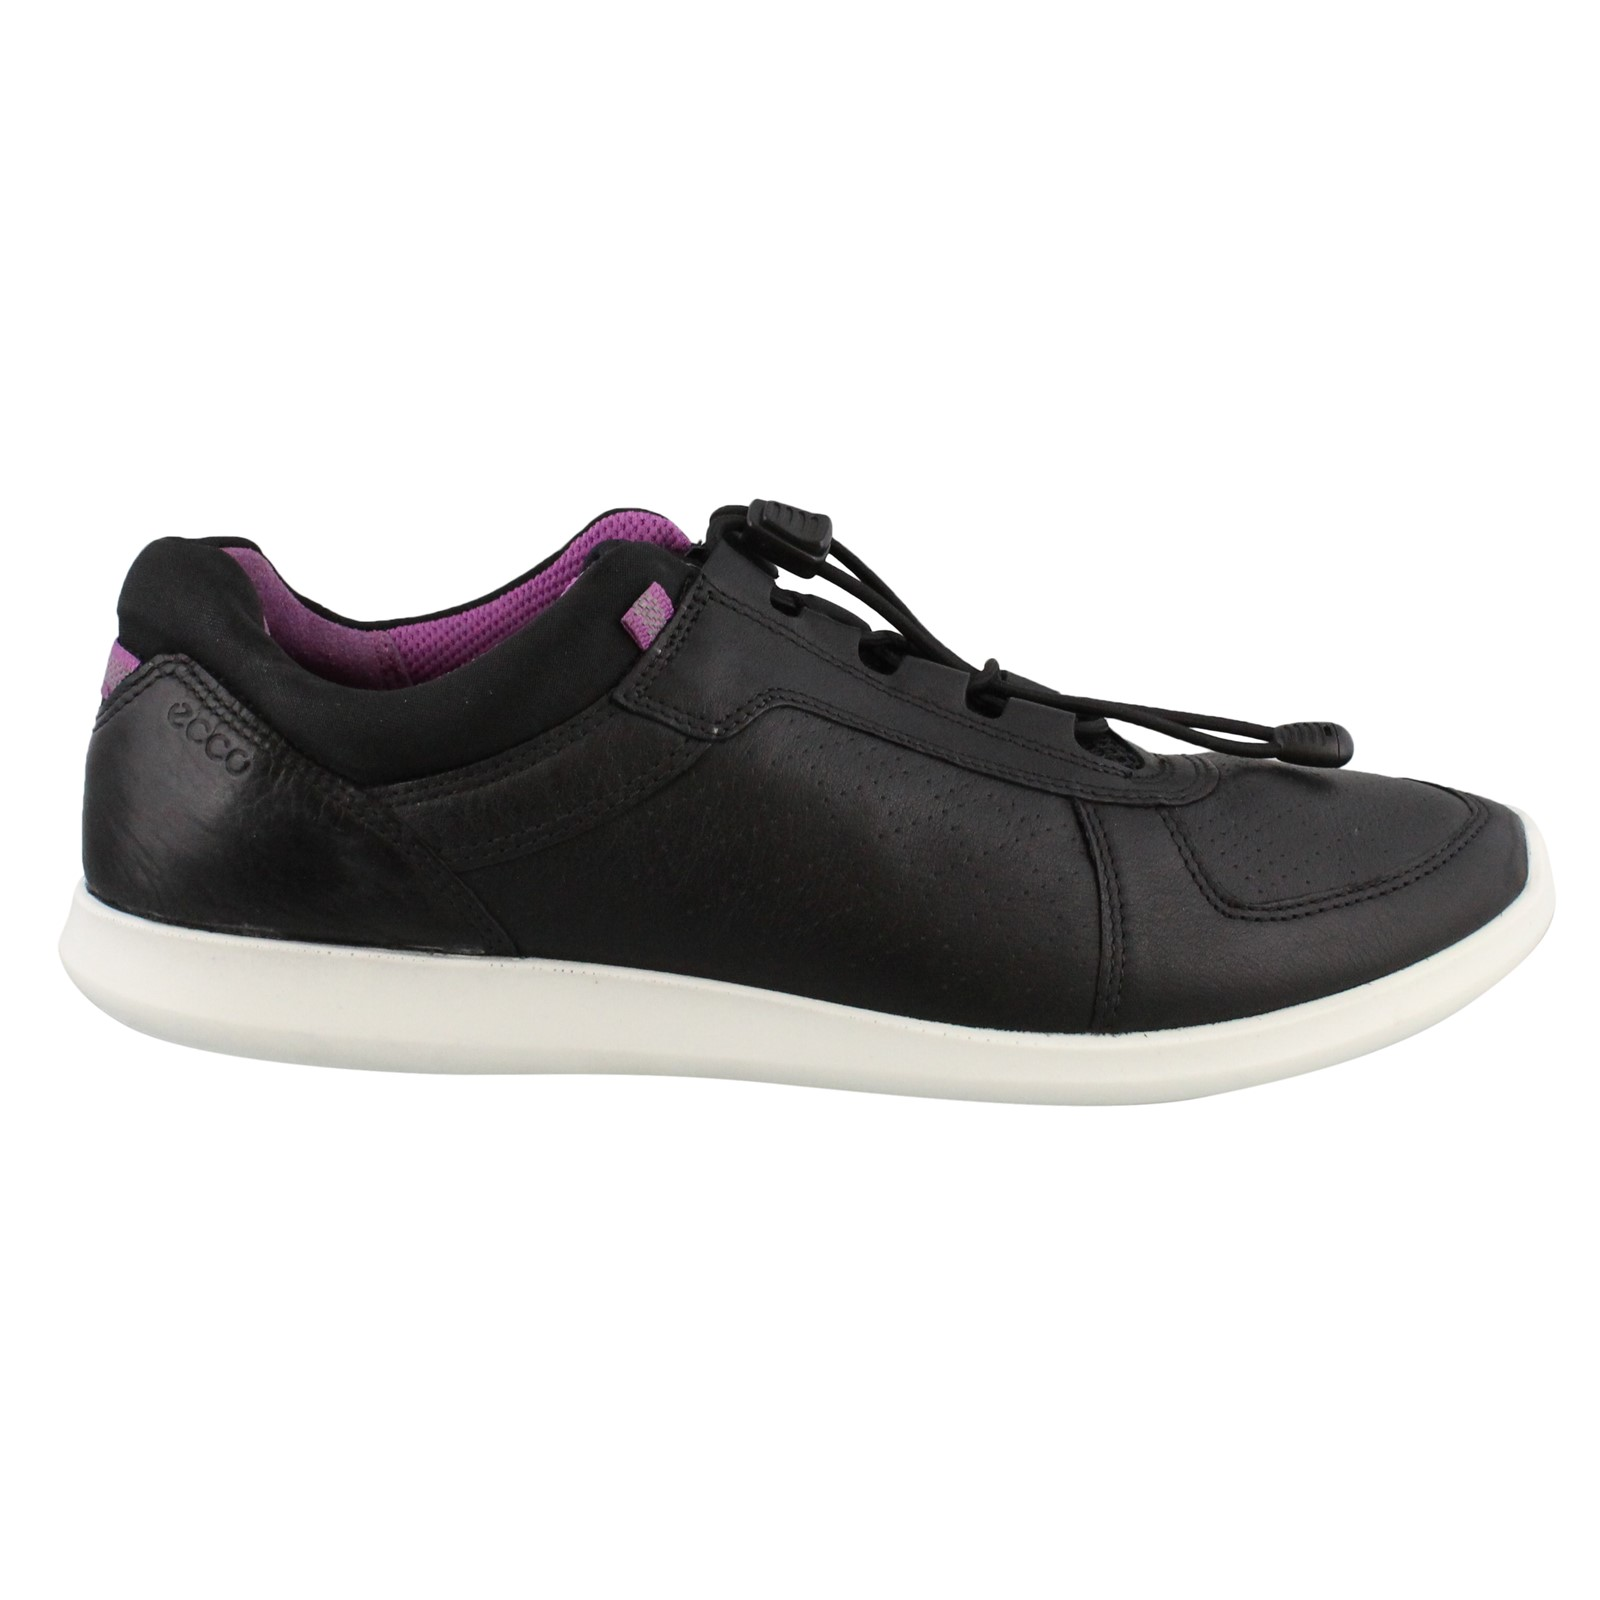 Women's Ecco, Sense Toggle Slip on Shoes